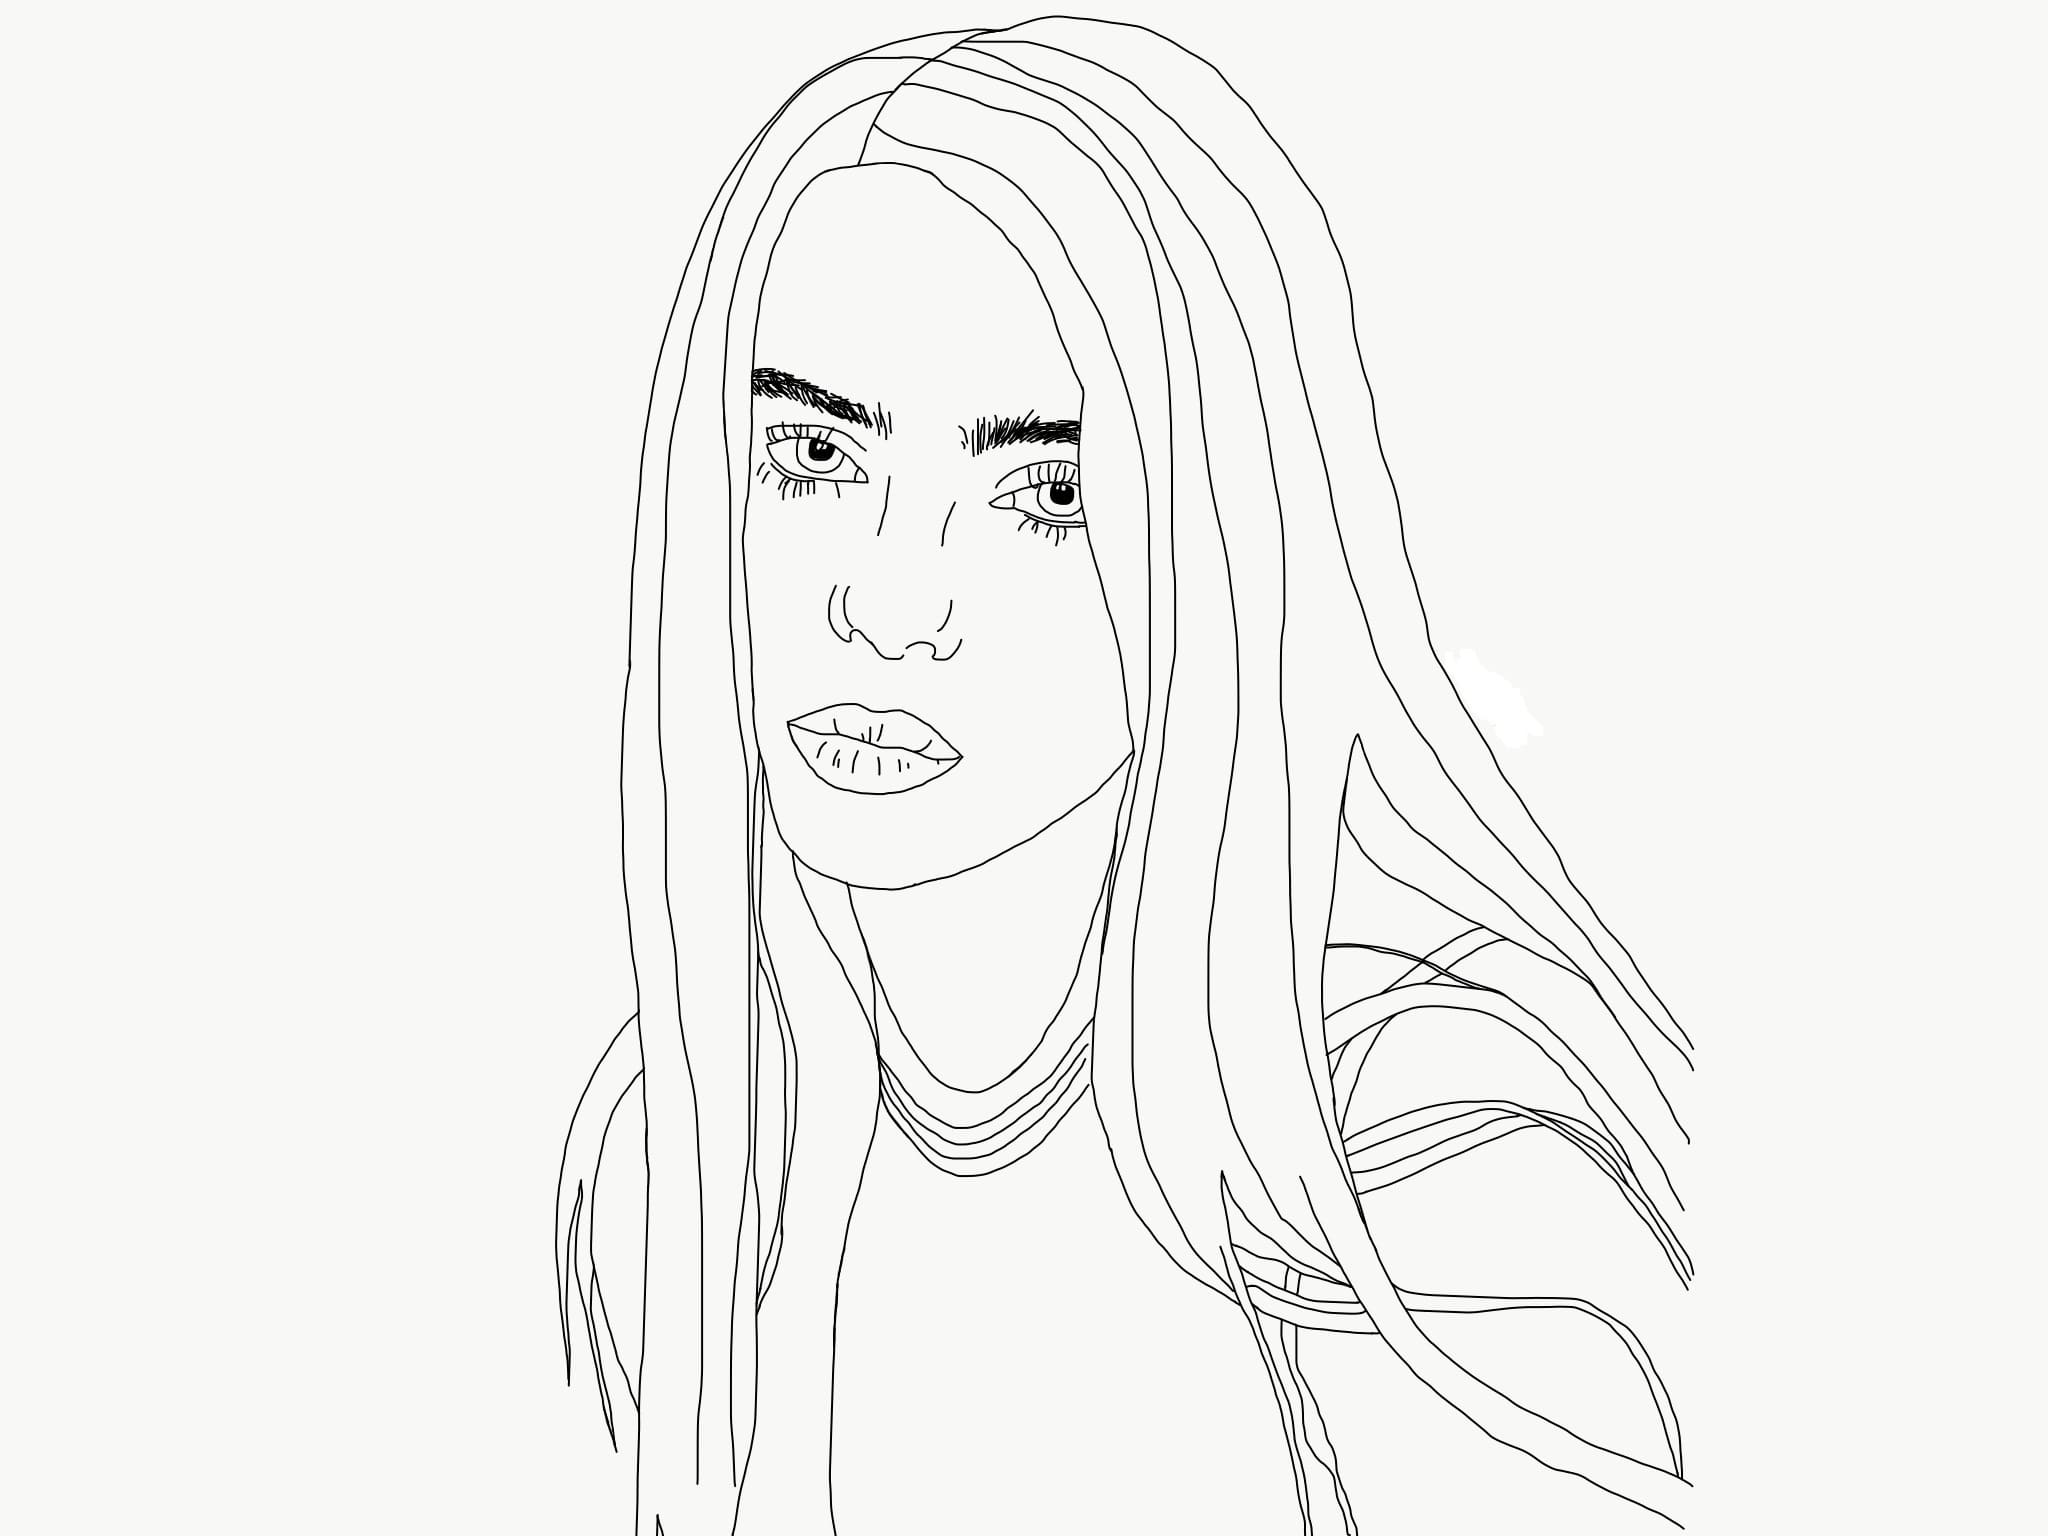 Famous singers coloring pages with pop stars Topcoloringpages | 1536x2048